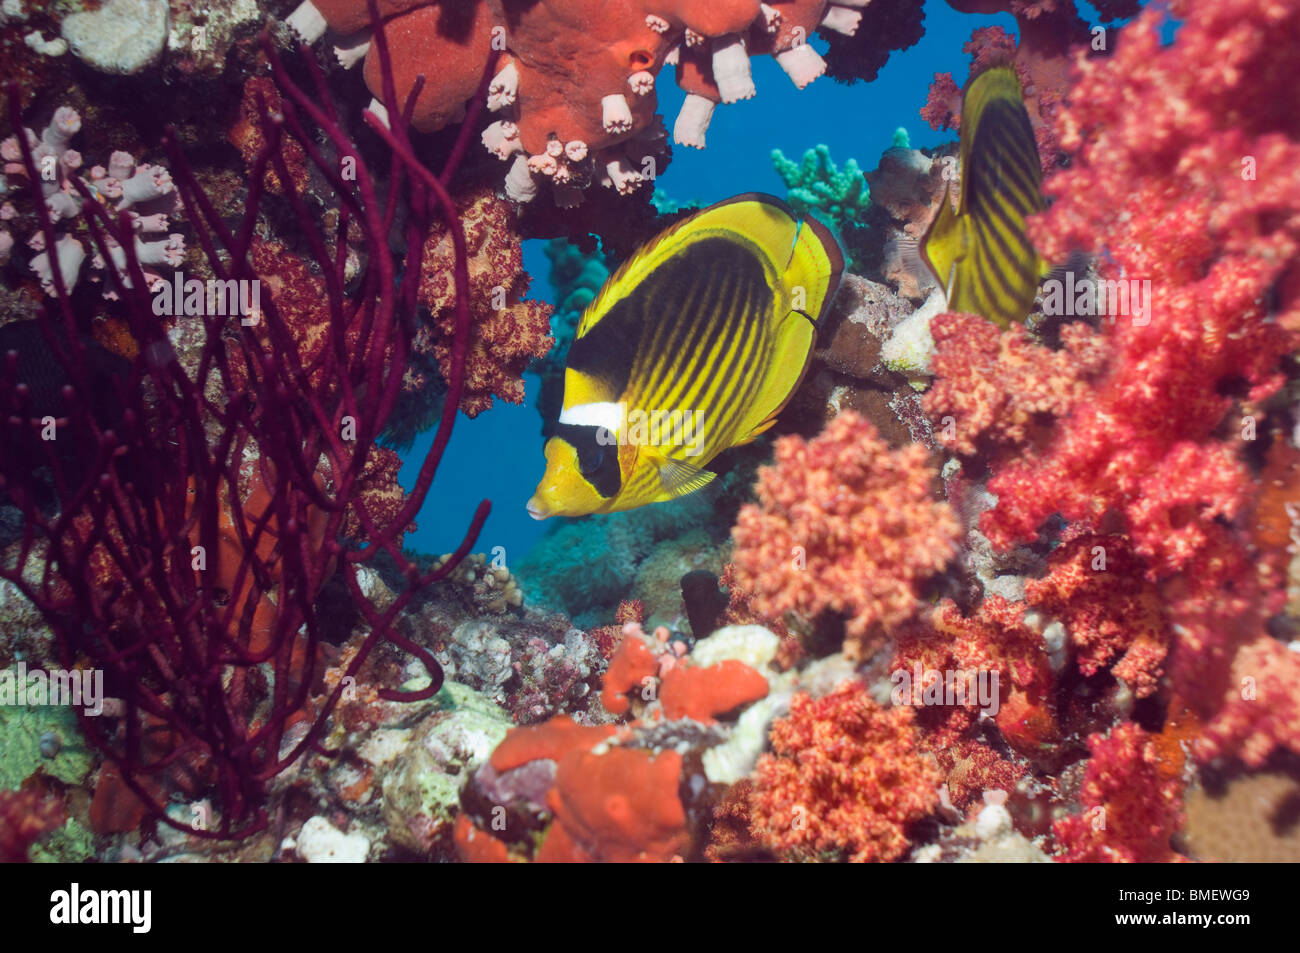 Red Sea racoon butterflyfish with soft corals on reef.  Egypt, Red Sea. - Stock Image